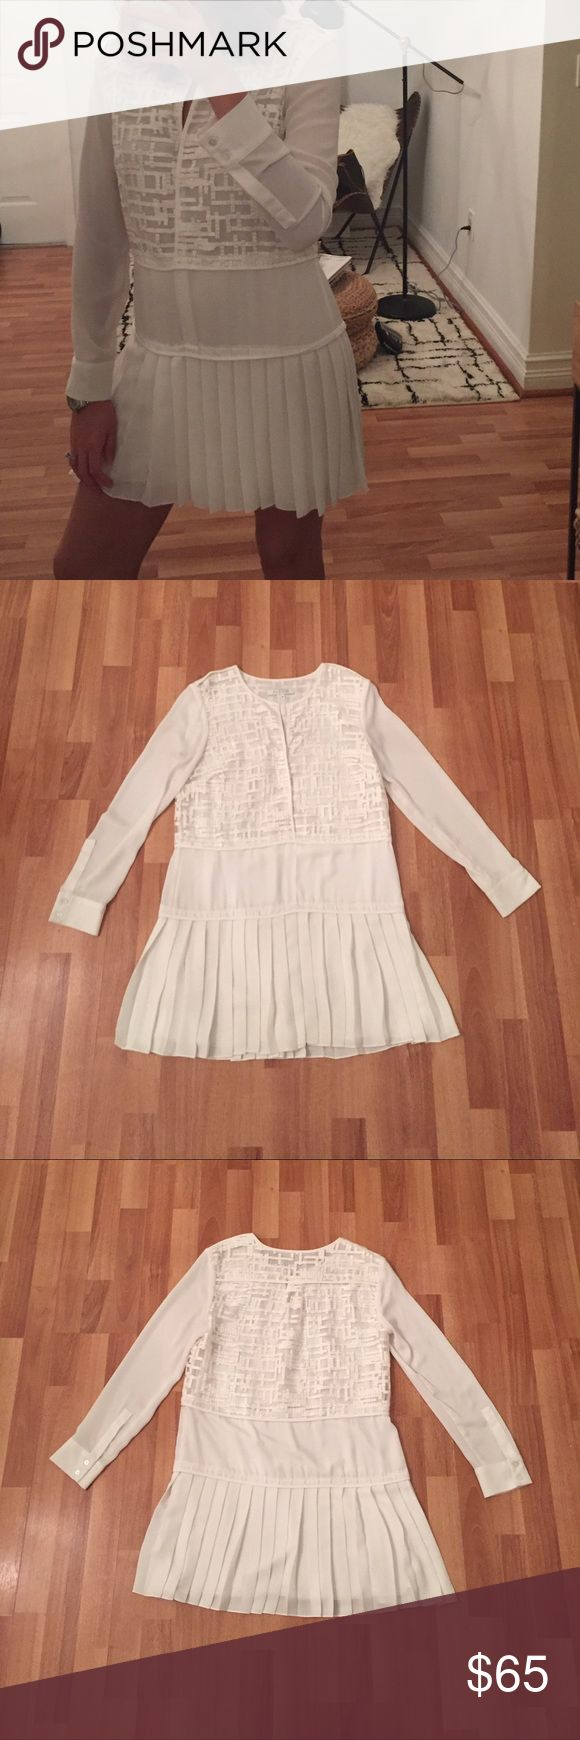 ALEXIS dress Super cute ALEXIS dress. Pair with sandals and you're good to go! ALEXIS Dresses Mini